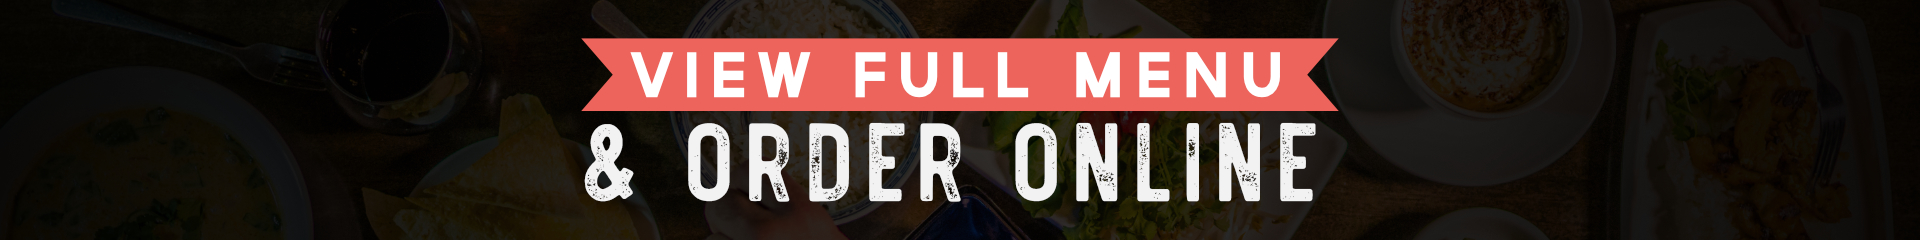 View our full menu & order online!